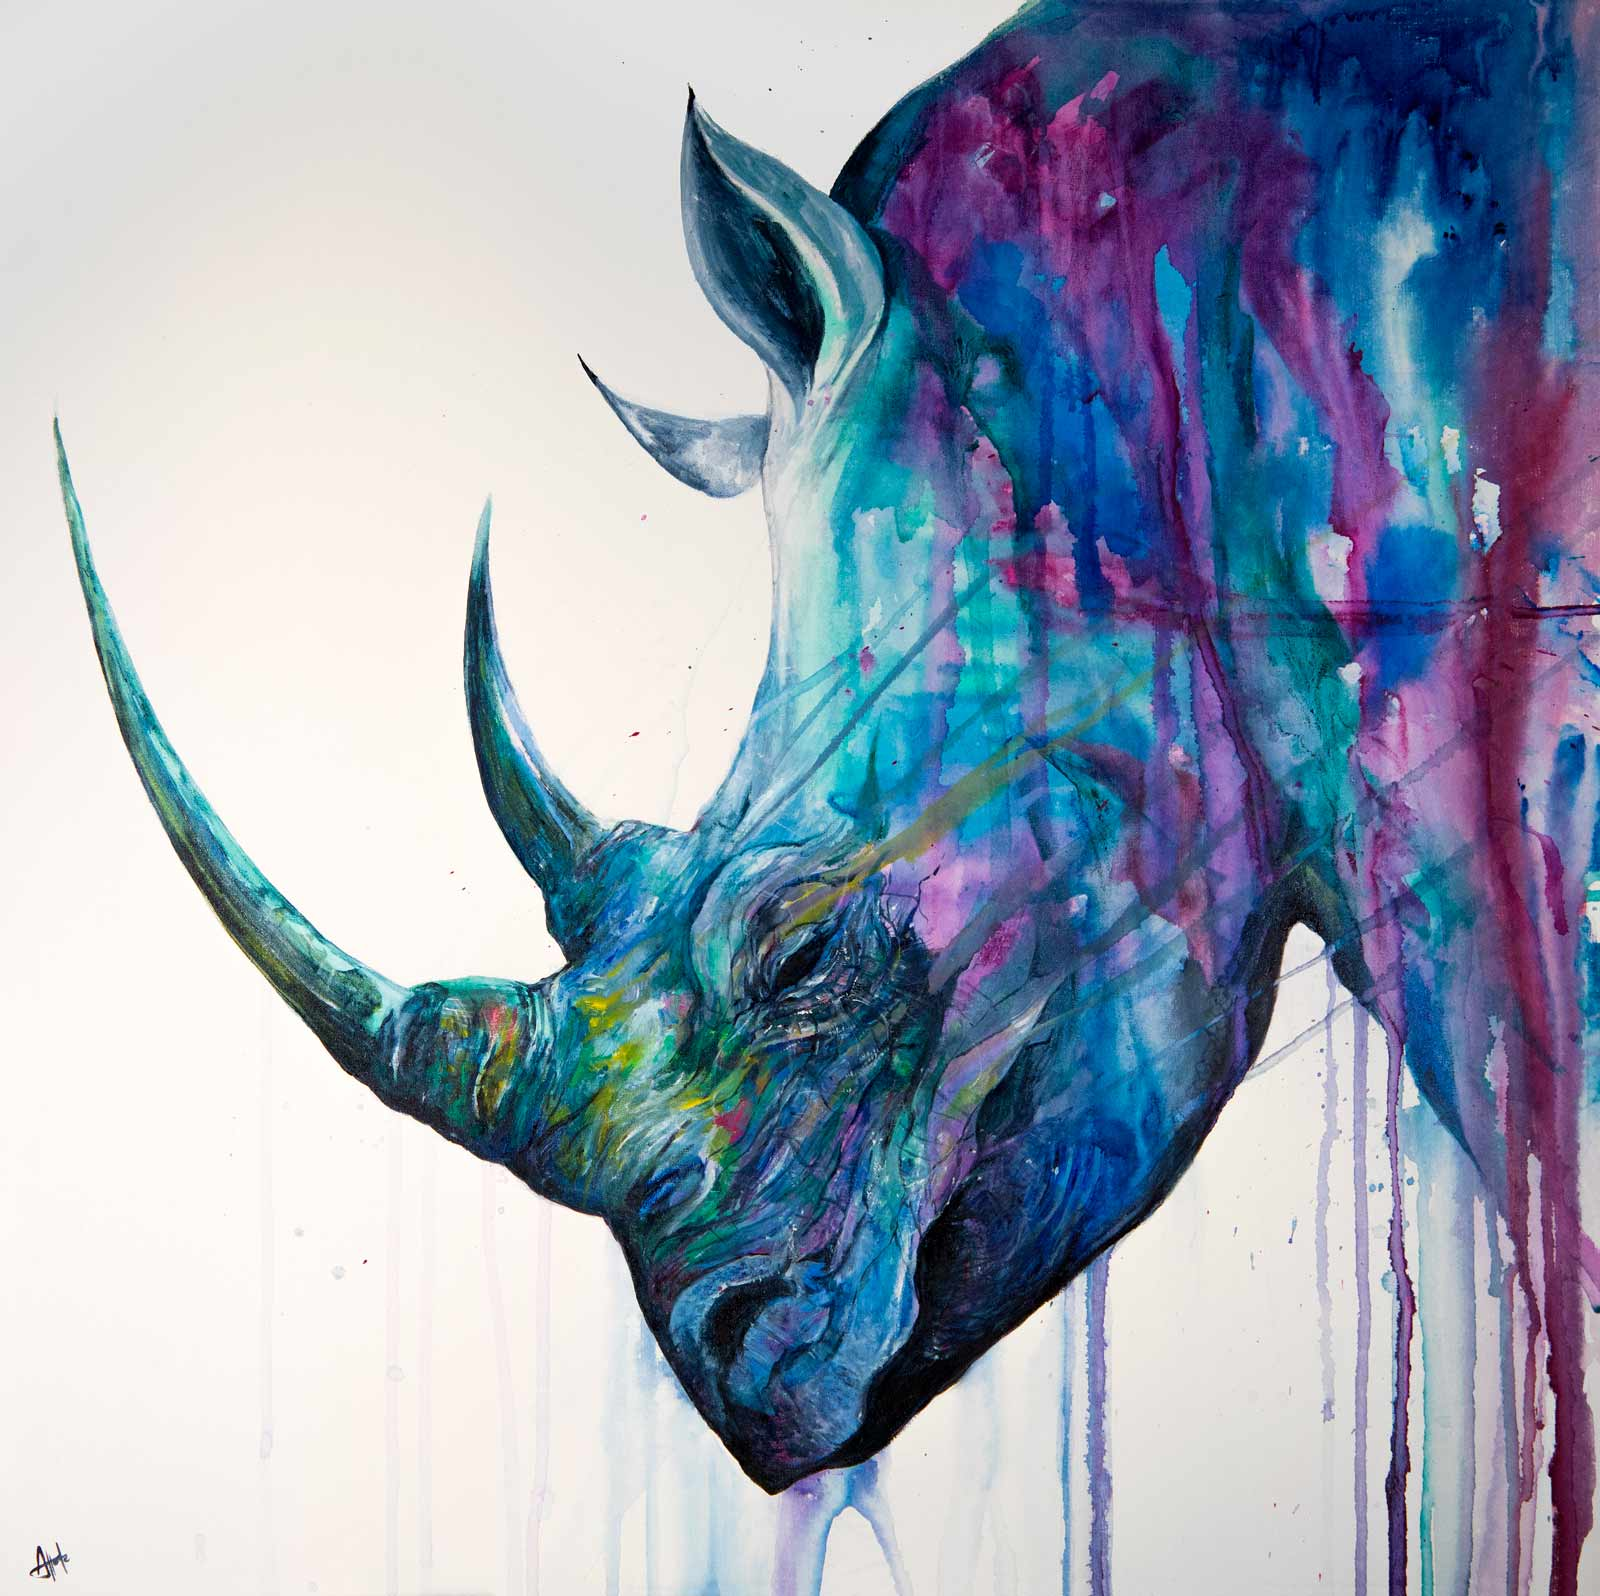 ink art by marc allante featuring a rhino